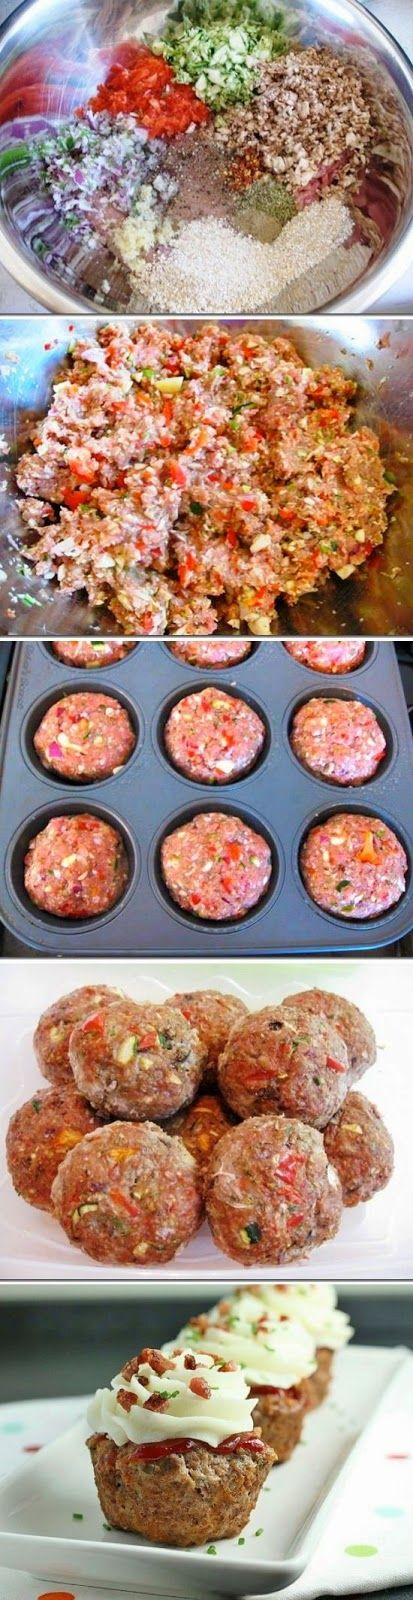 Meatloaf Cupcakes-replace breadcrumbs with Shake n Bake for low carb option